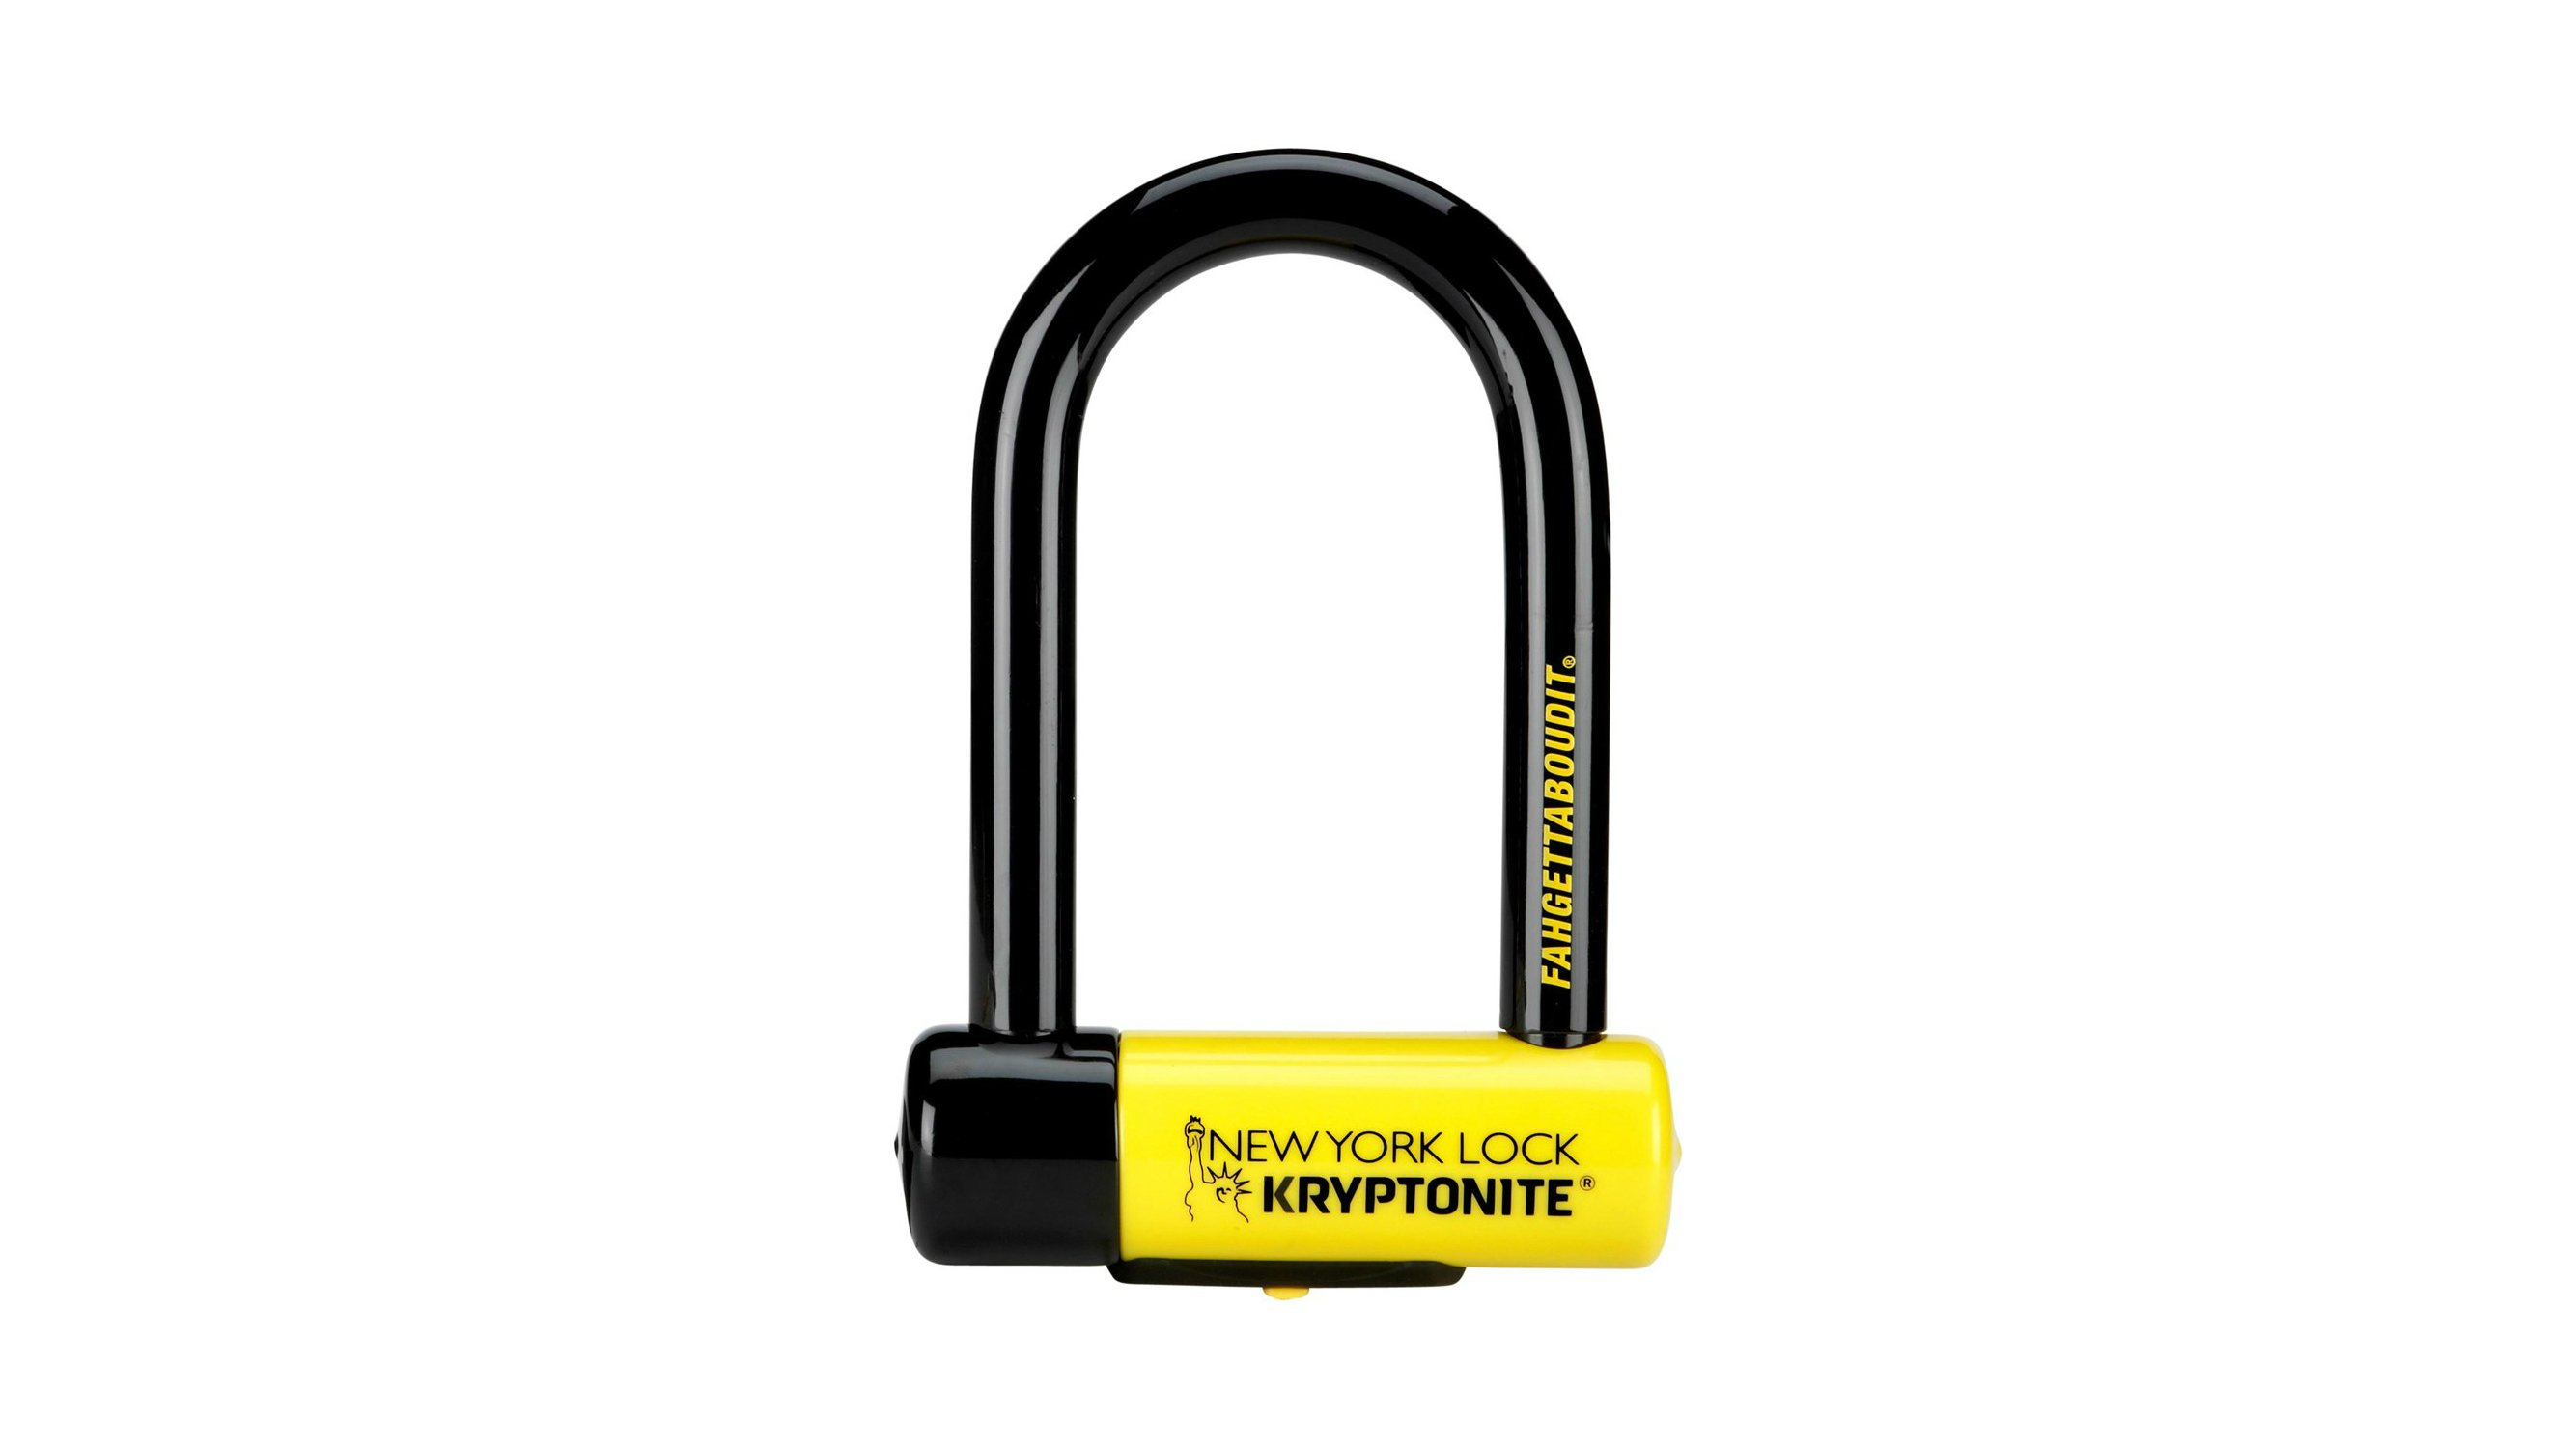 Bicycle Lock Anti-Theft Security Code Combination Lock Steel Bike Cable Lock DT